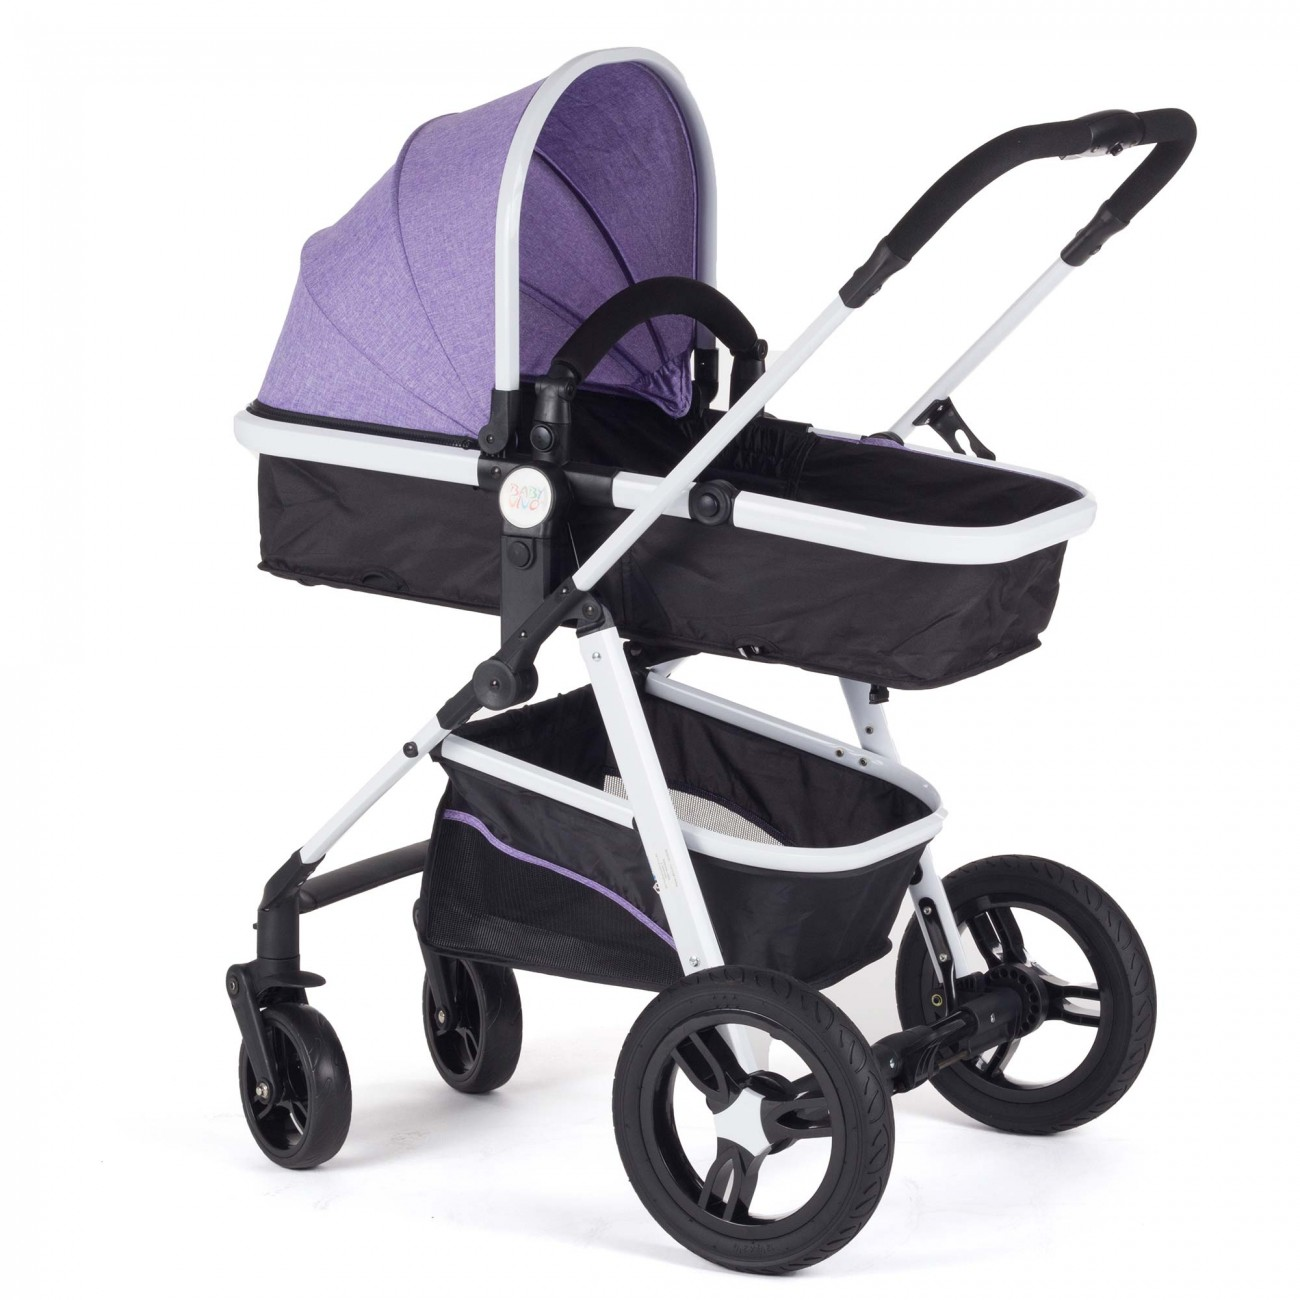 baby vivo stroller and buggy 2in1 combination purple. Black Bedroom Furniture Sets. Home Design Ideas